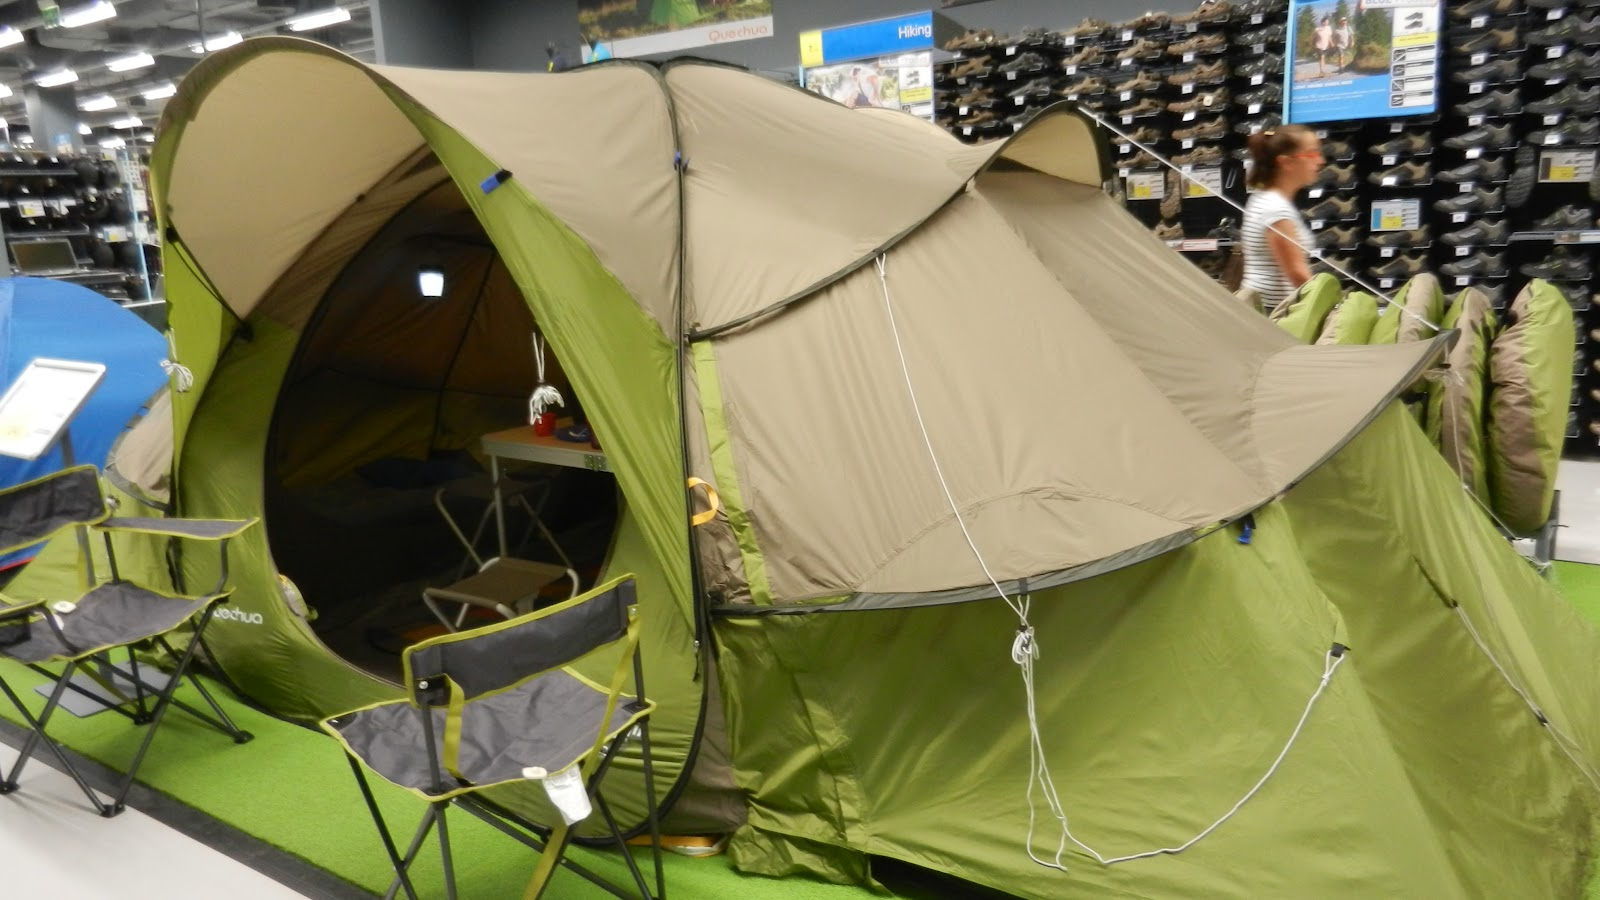 ... tents and all the equipment and gear used for c&ing. The weather is so pleasant now but when October begins it going to be fantastic weather ... & Kuweight 64: CAMPING TENT AT DECATHLON